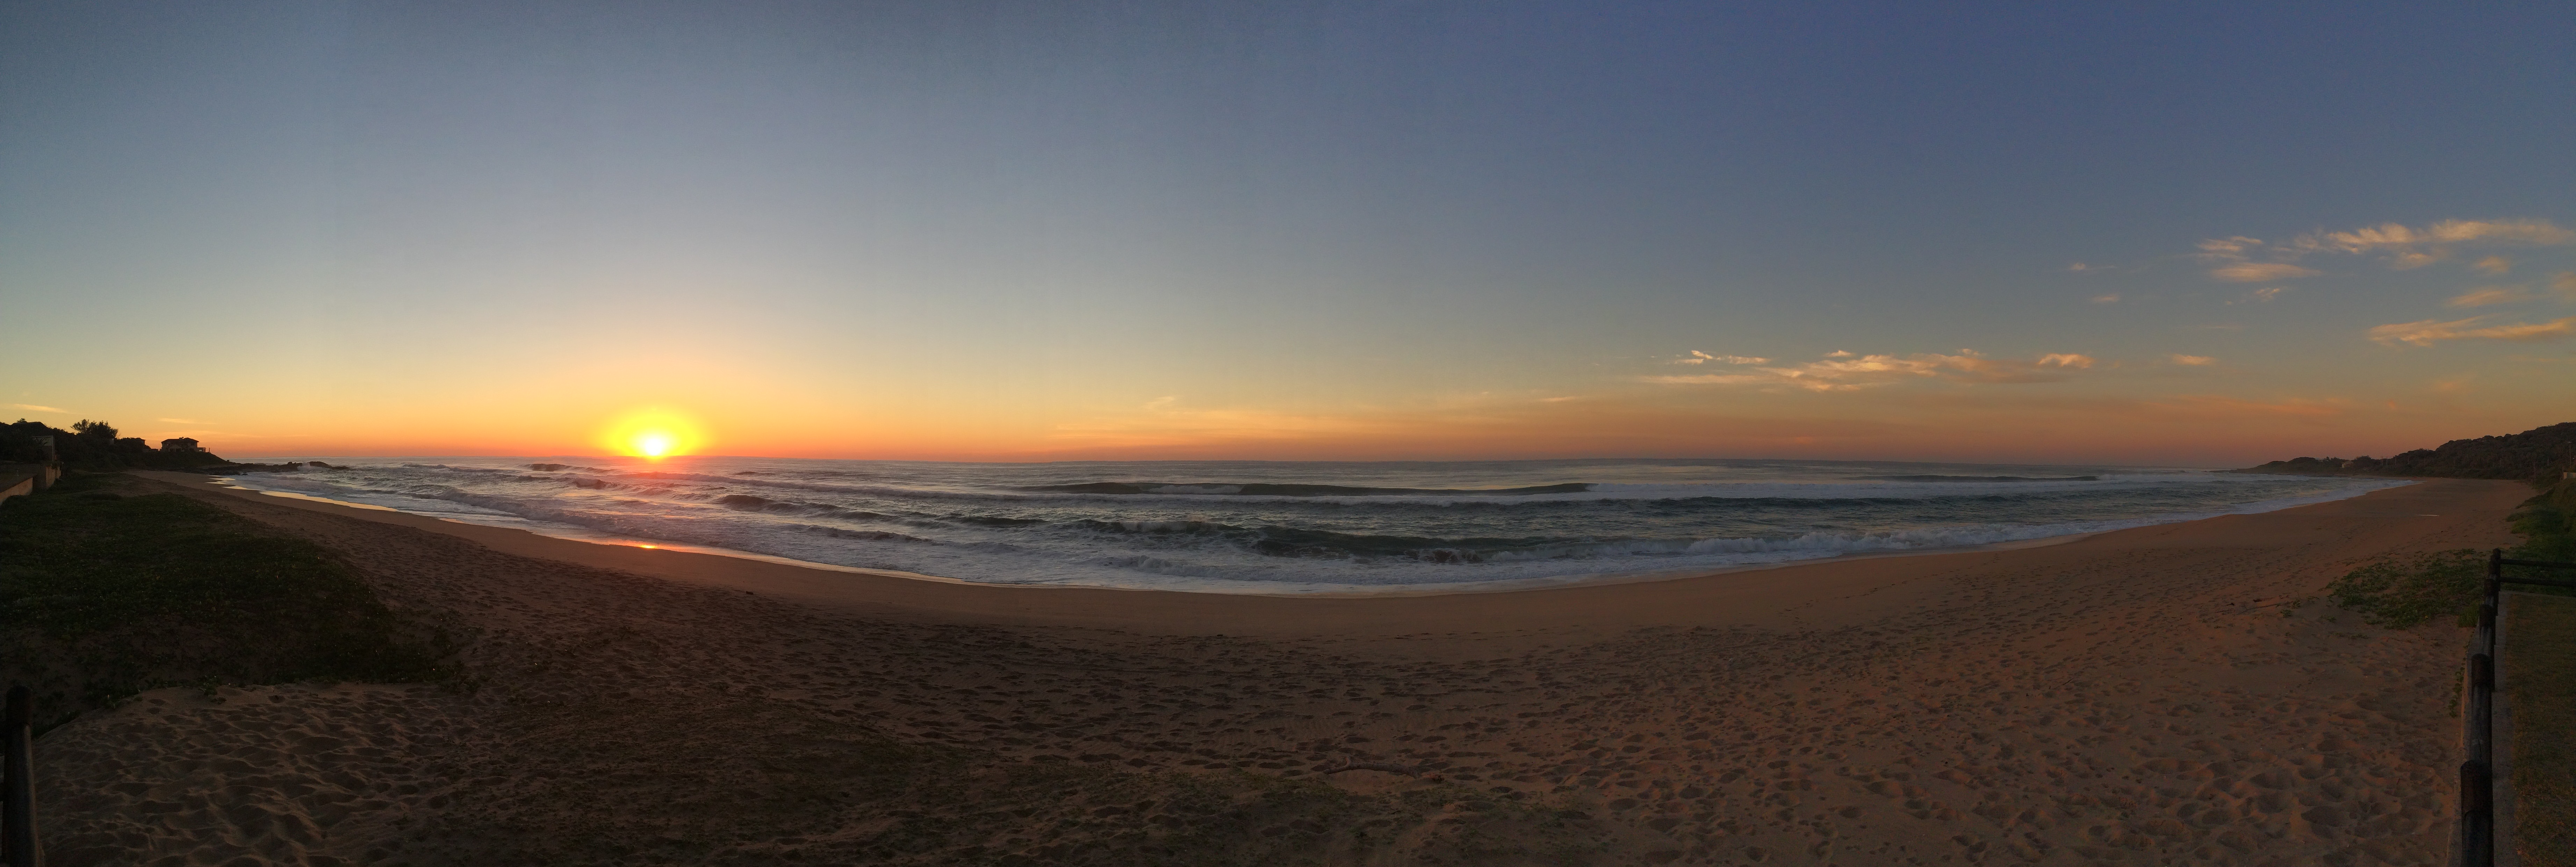 Pano - Sunrise